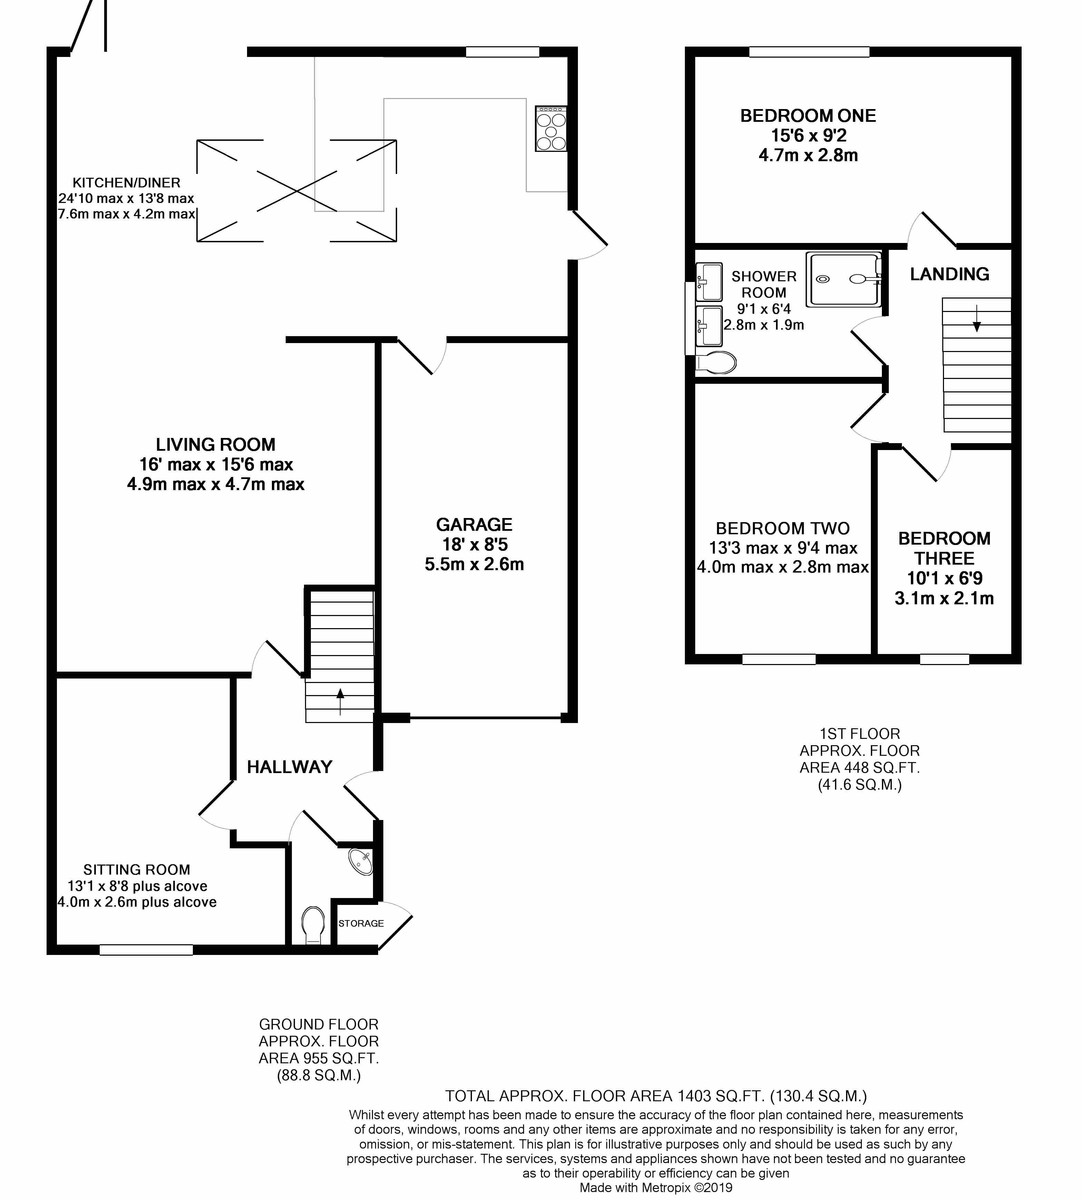 Balcaskie Close, Edgbaston floorplan 1 of 1